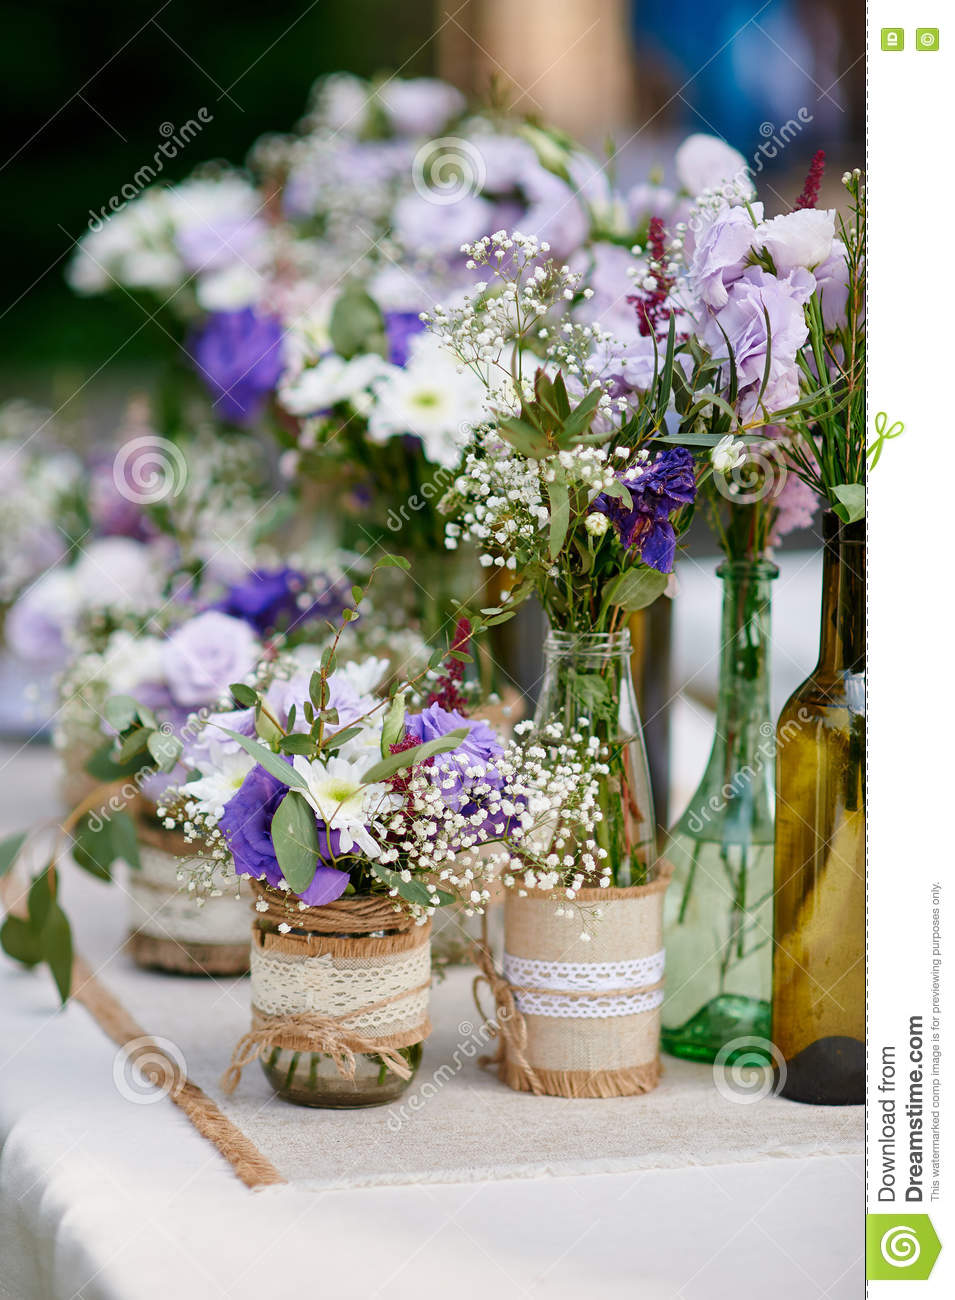 Using Flowers To Decorate A Party Table